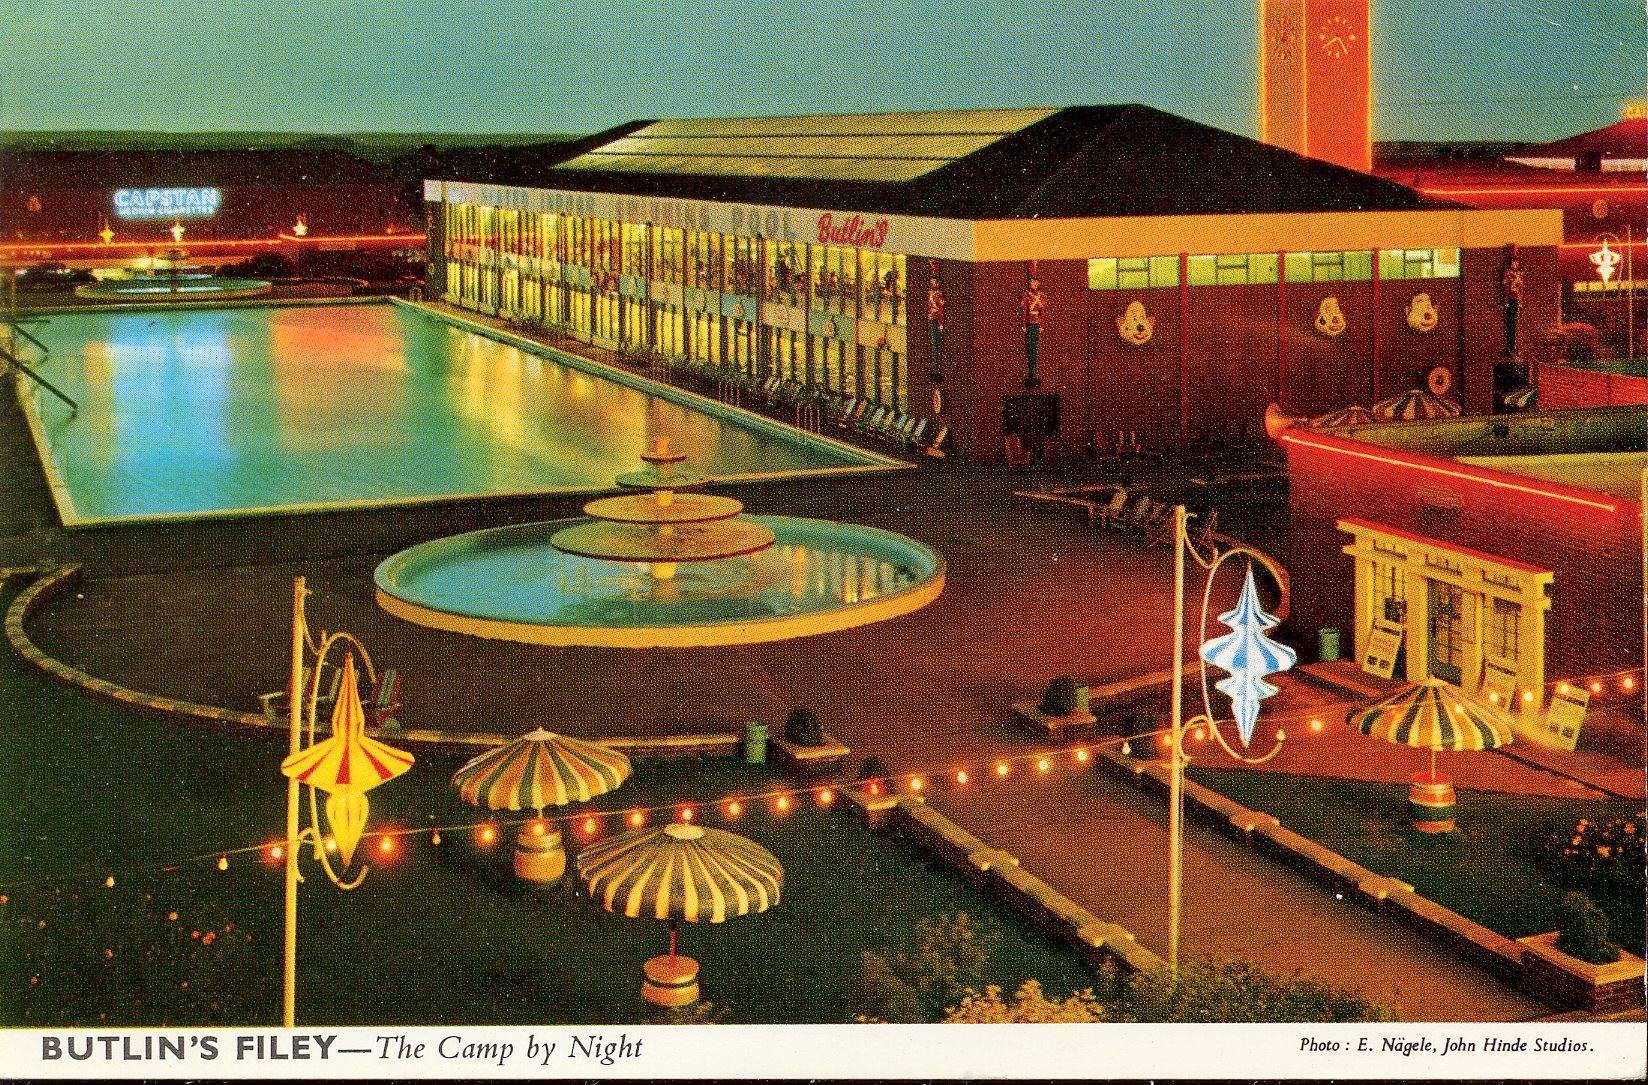 Butlins Filey - The Camp by Night